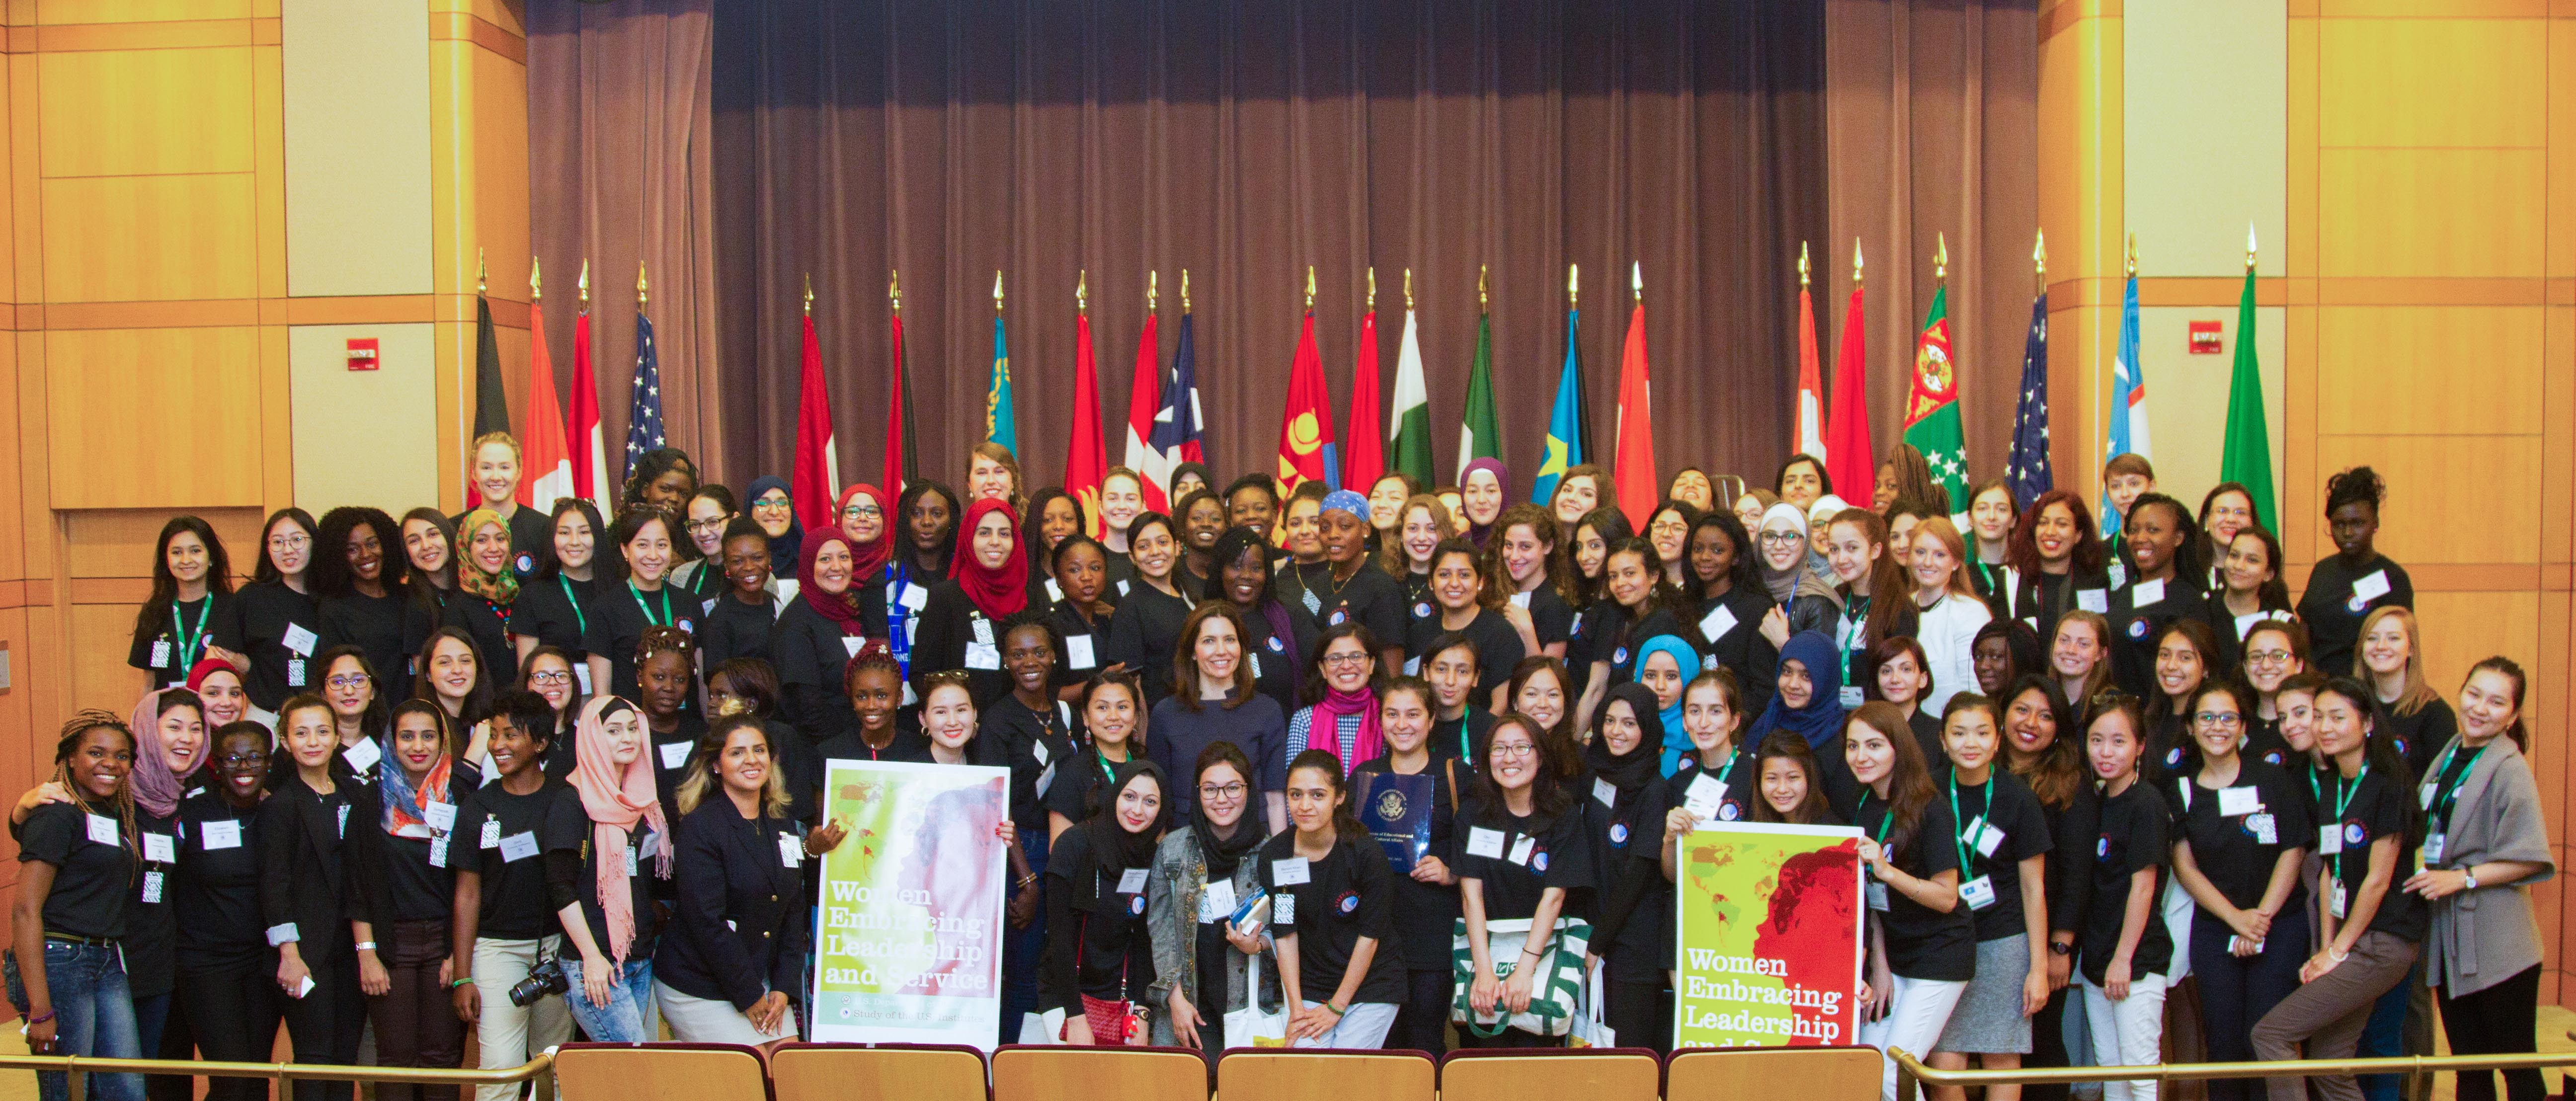 International group of women pose for a group shot in front of flags